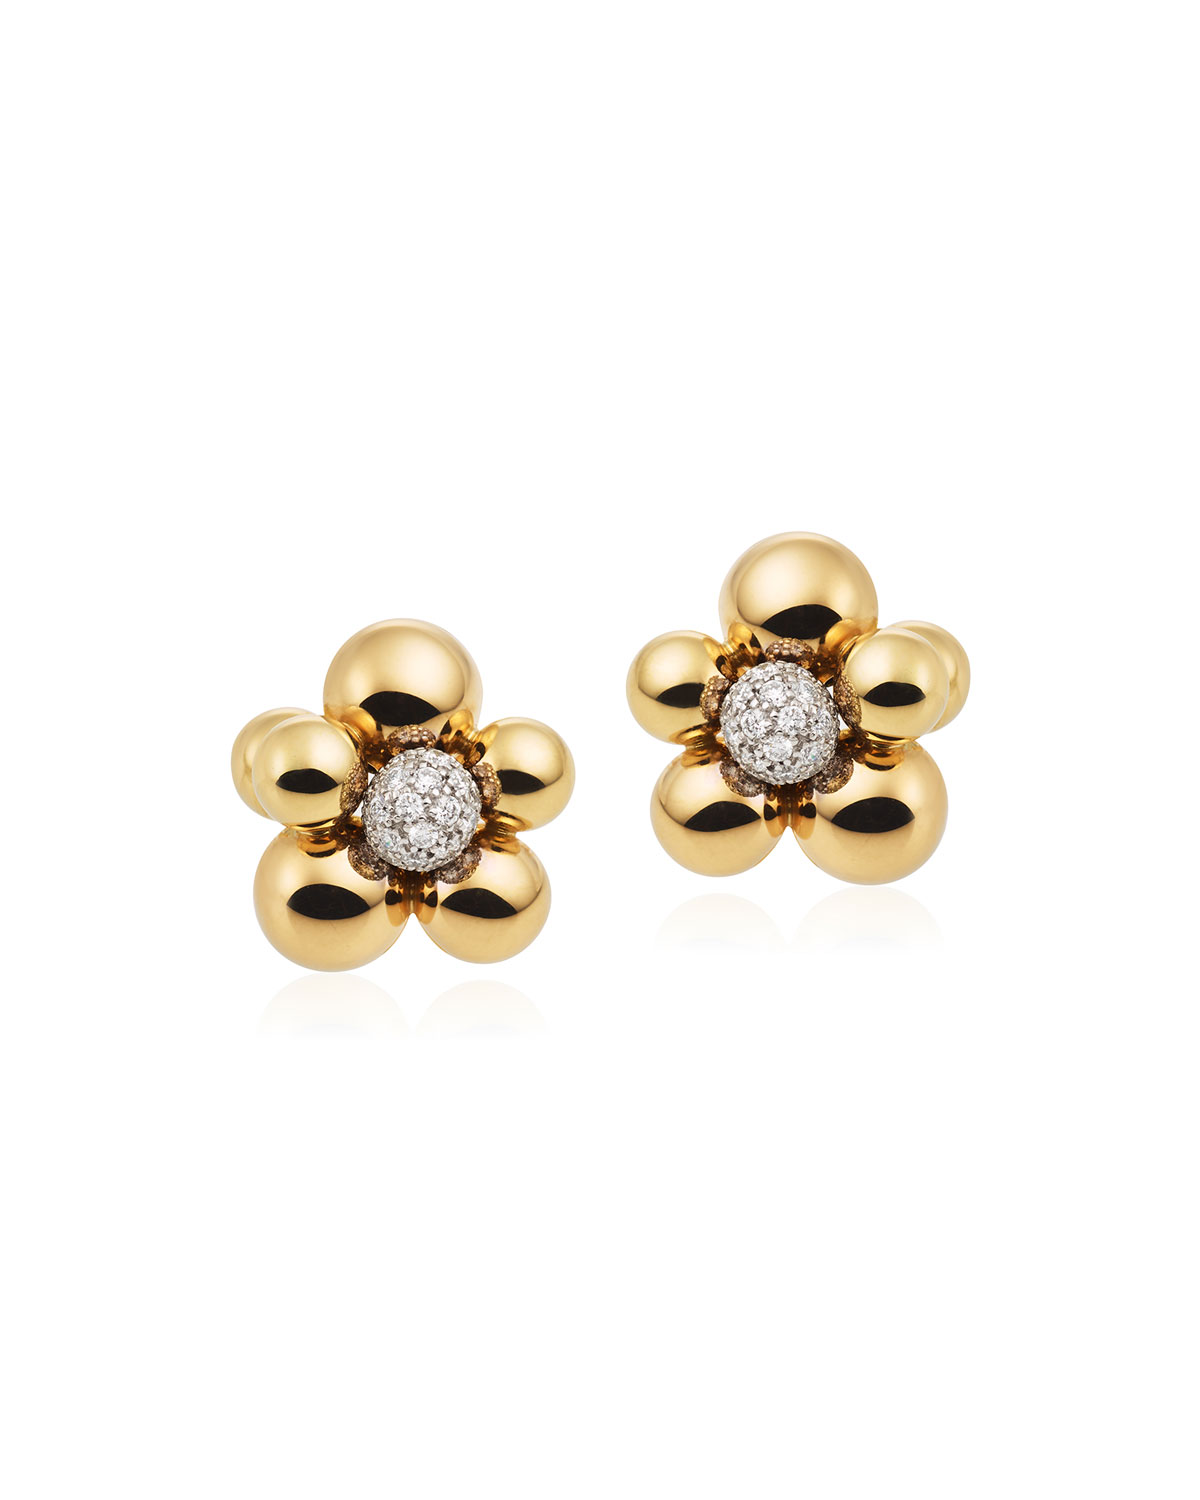 MARINA B Atomo Mini Diamond Cluster Earrings In 18K Gold